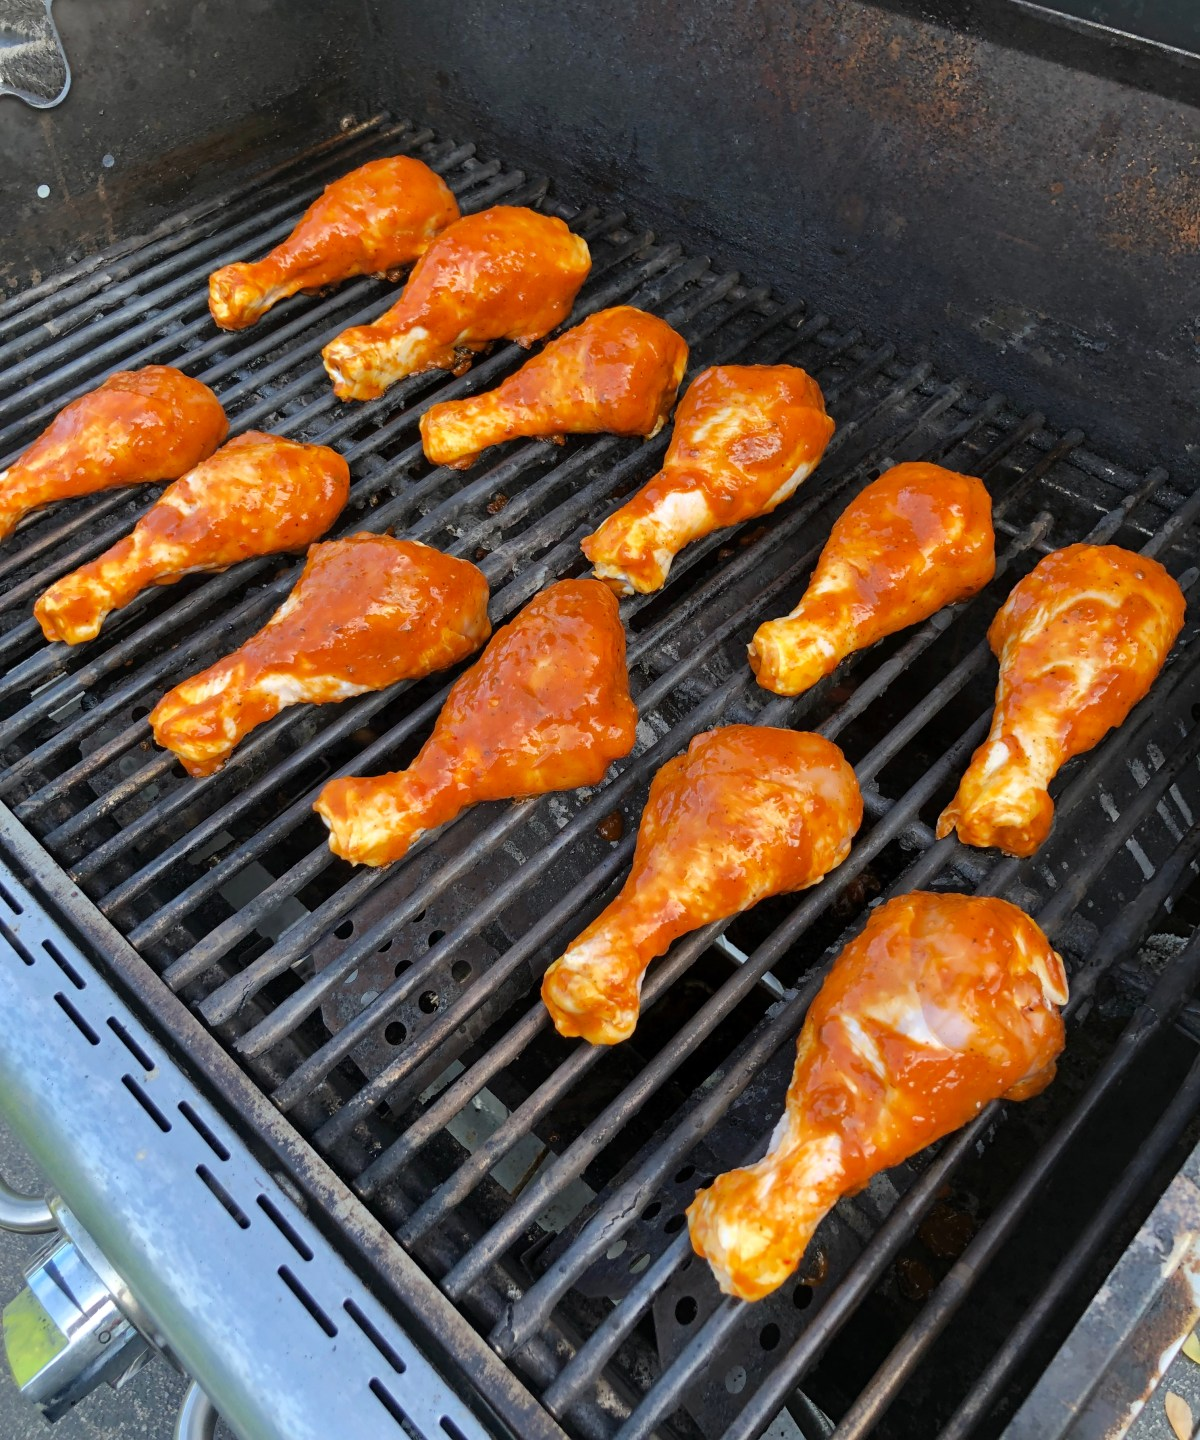 Chicken drumsticks covered in barbecue sauce on a grill rack.